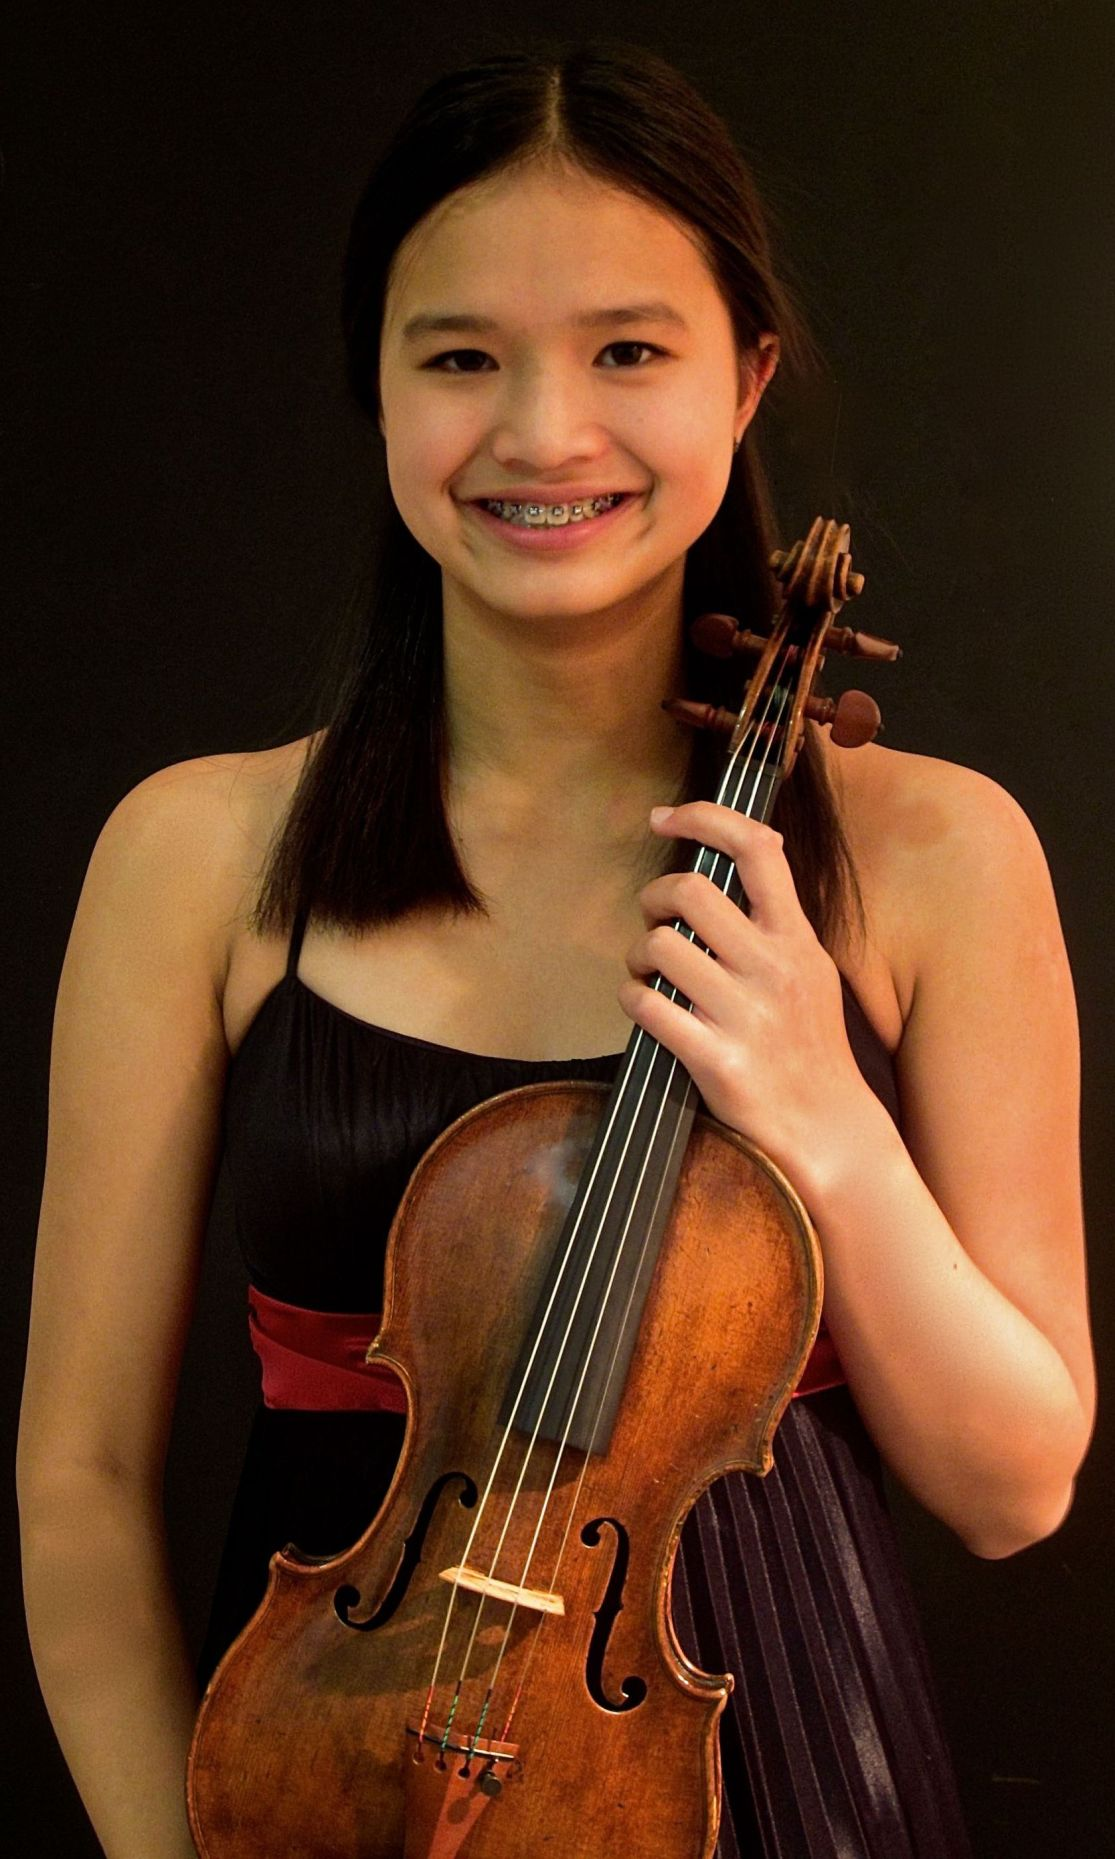 Oregon violinist wins initial CSO young artist competition